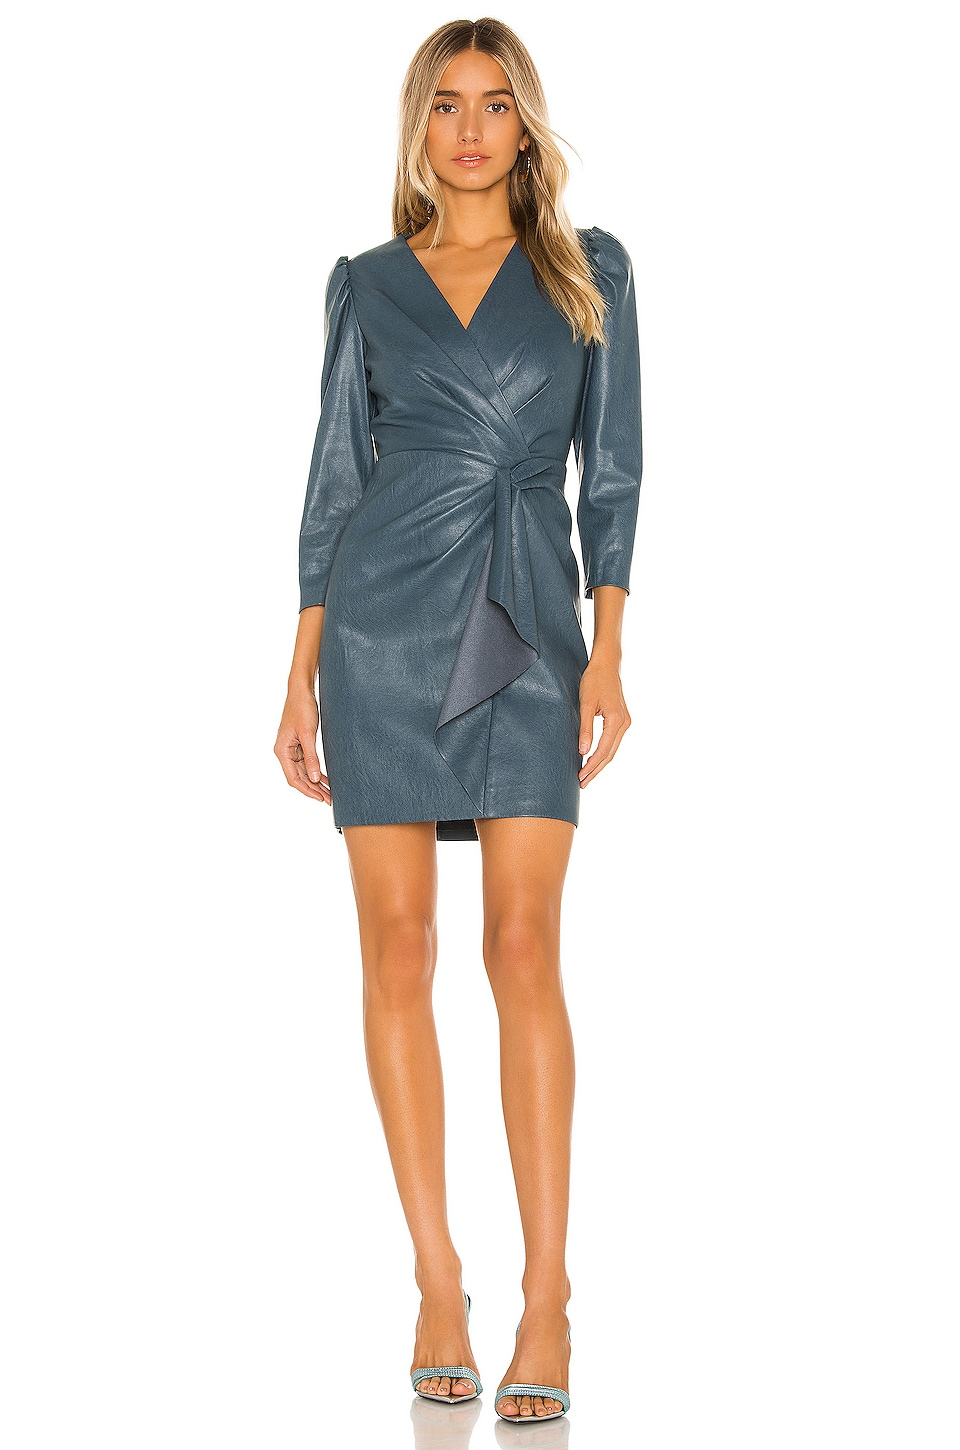 Rebecca Taylor Long Sleeve Vegan Leather Dress in Wave